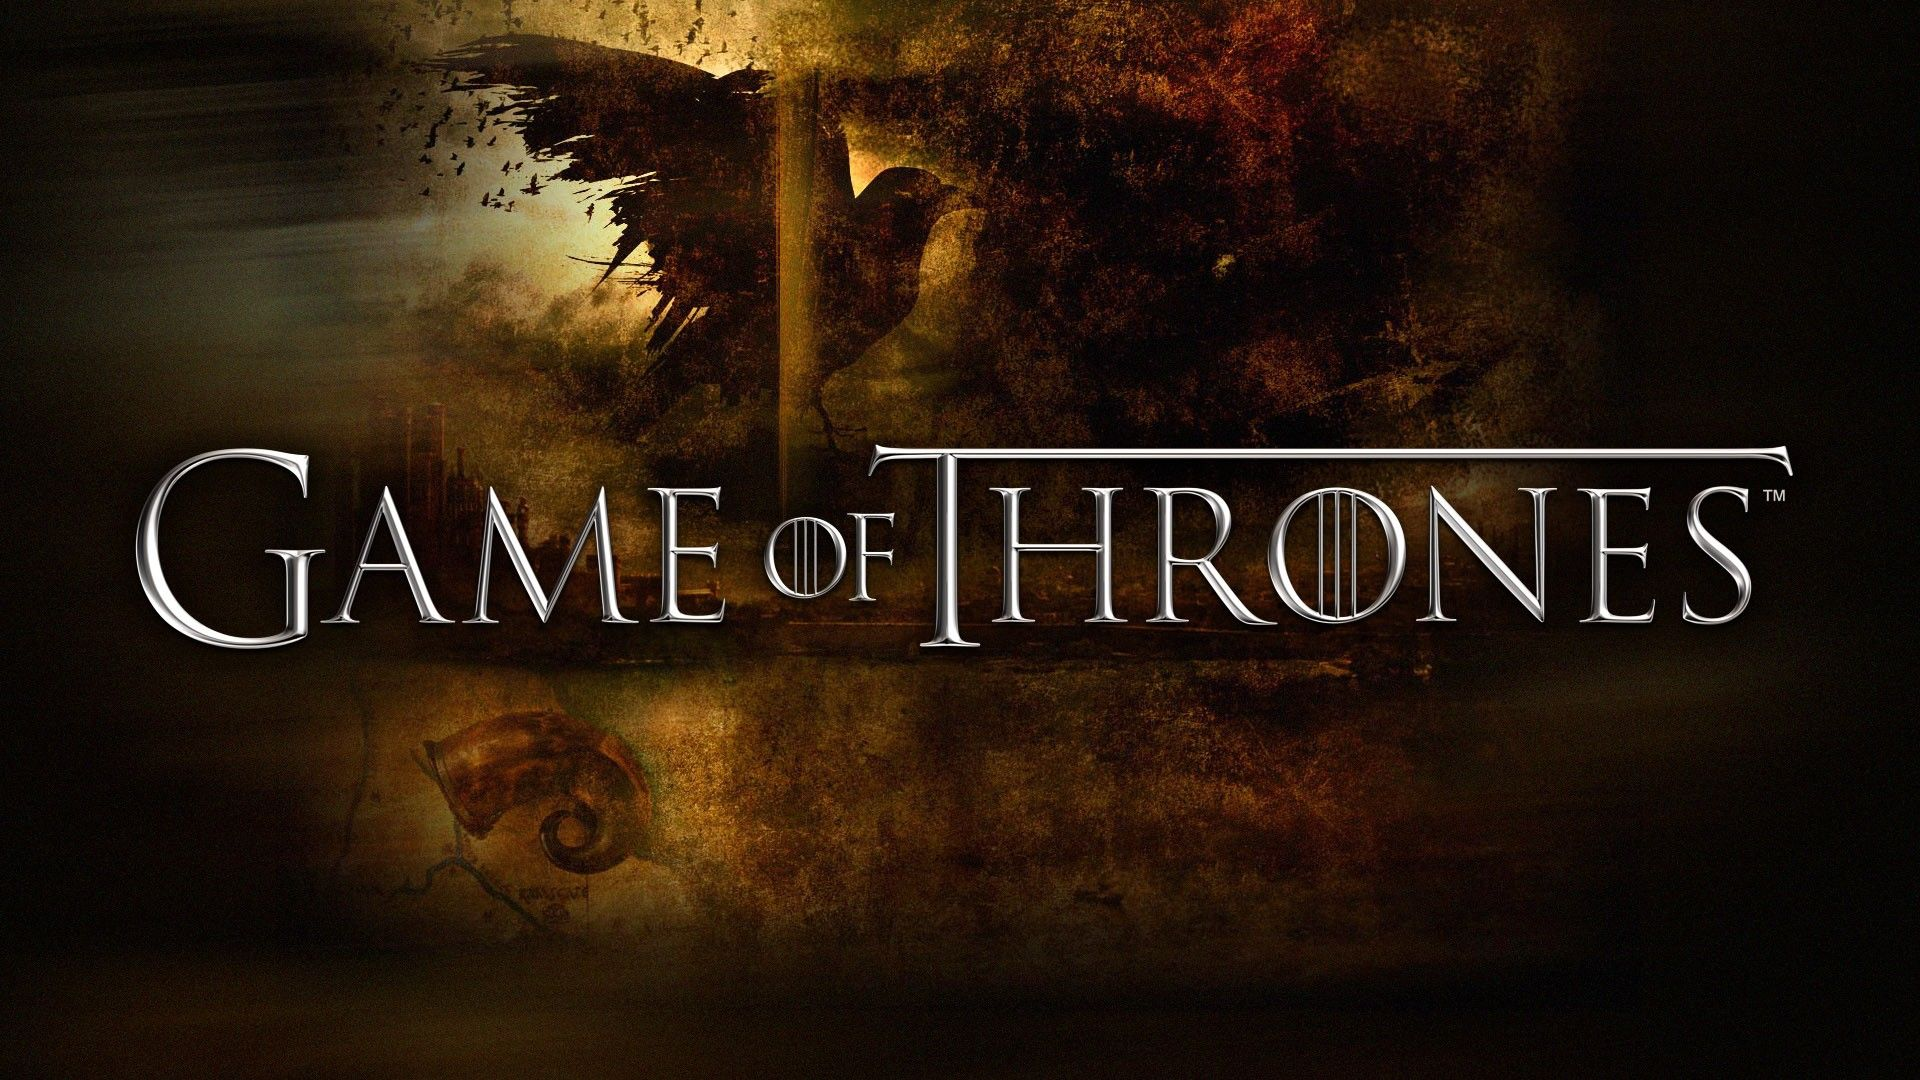 Game Of Thrones Hd Wallpapers New Tab Theme Watch Game Of Thrones Game Of Thrones Theme Game Of Thrones Tv